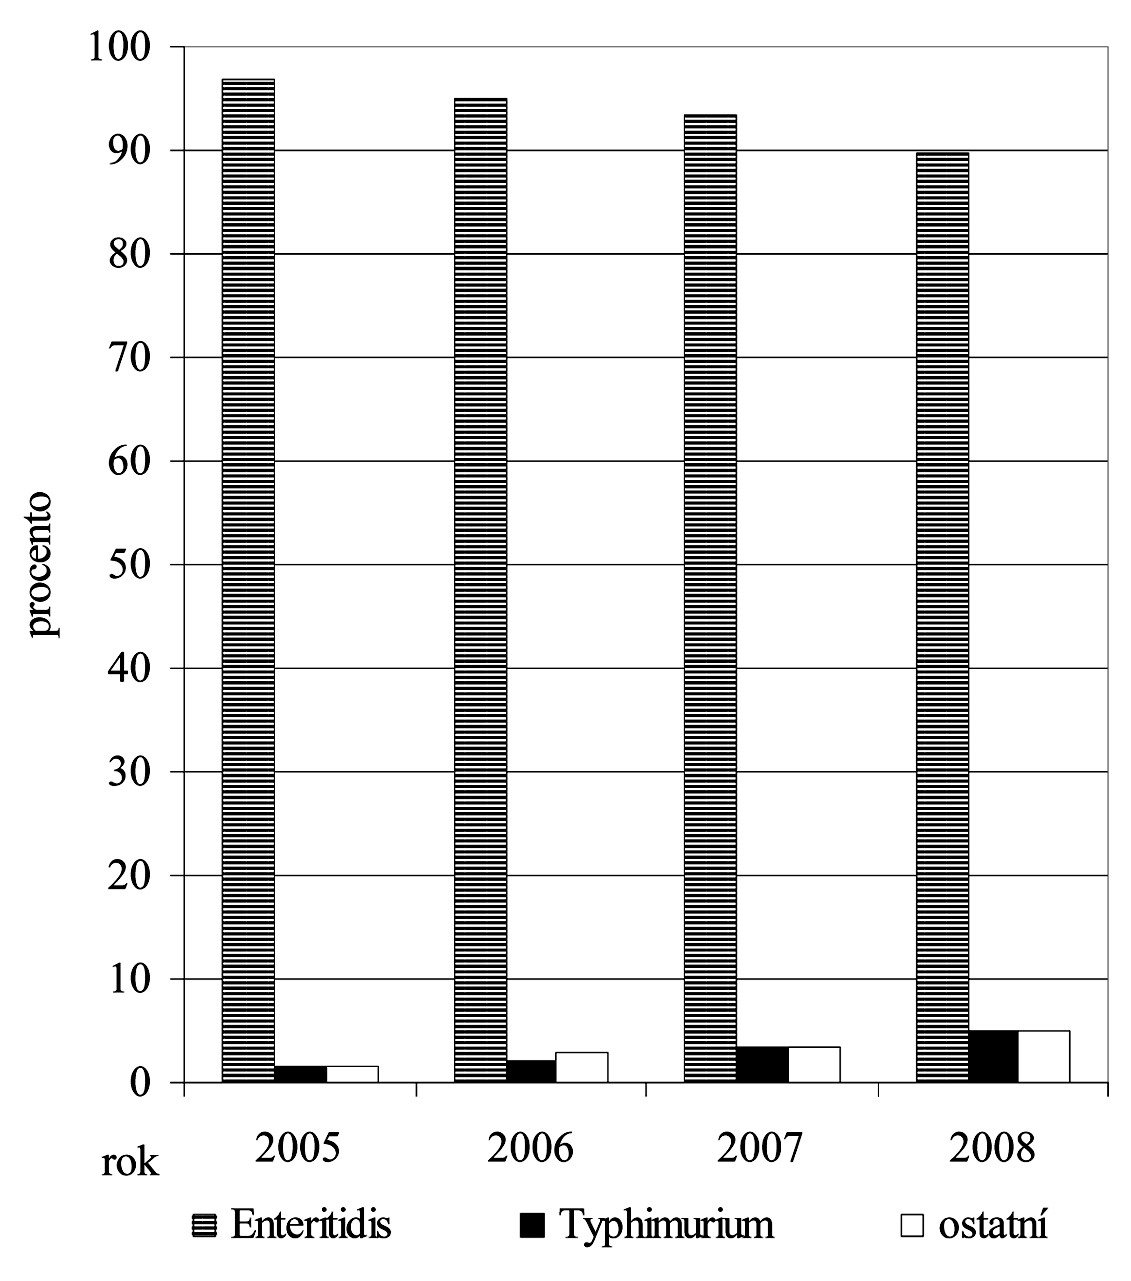 Trendy zastoupení vybraných sérotypů u hlášených onemocnění salmonelózou v letech 2005-2008 (1.-34. týden) (zdroj EPIDAT)